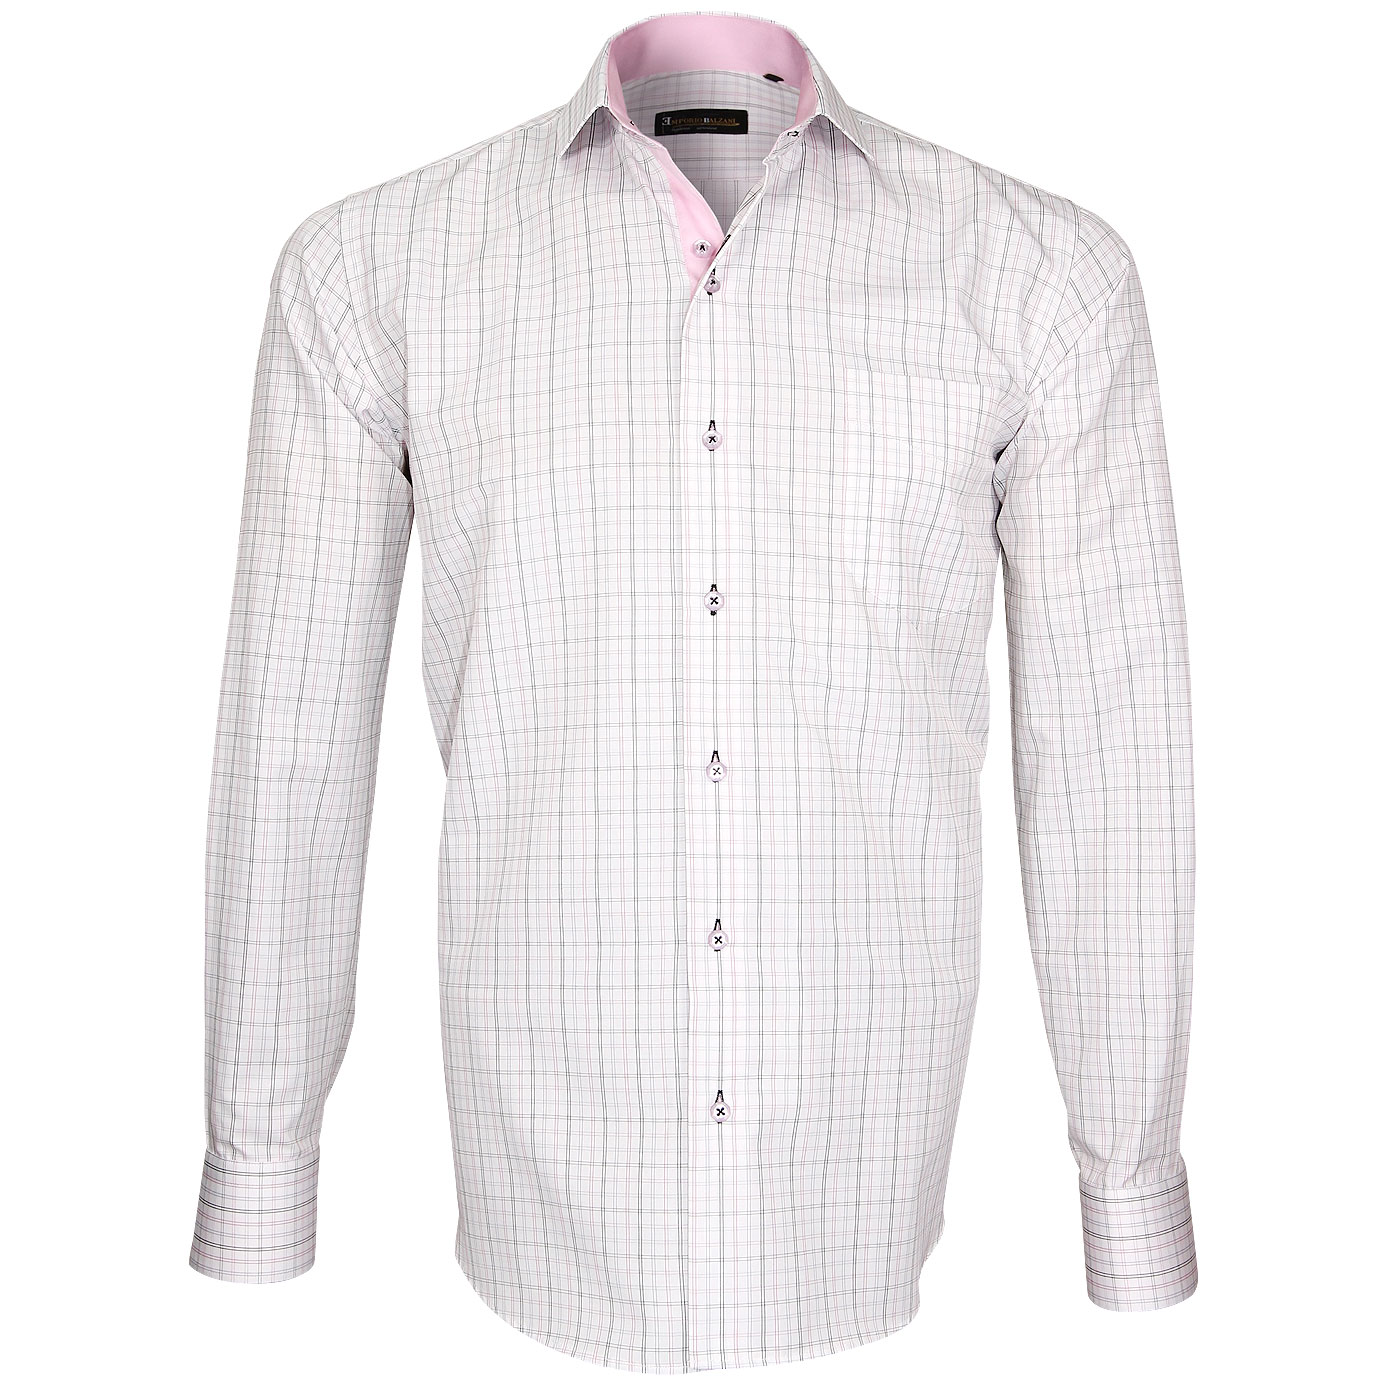 Shirt easy Ironing: on webmenshirts +600 models delivered 72H